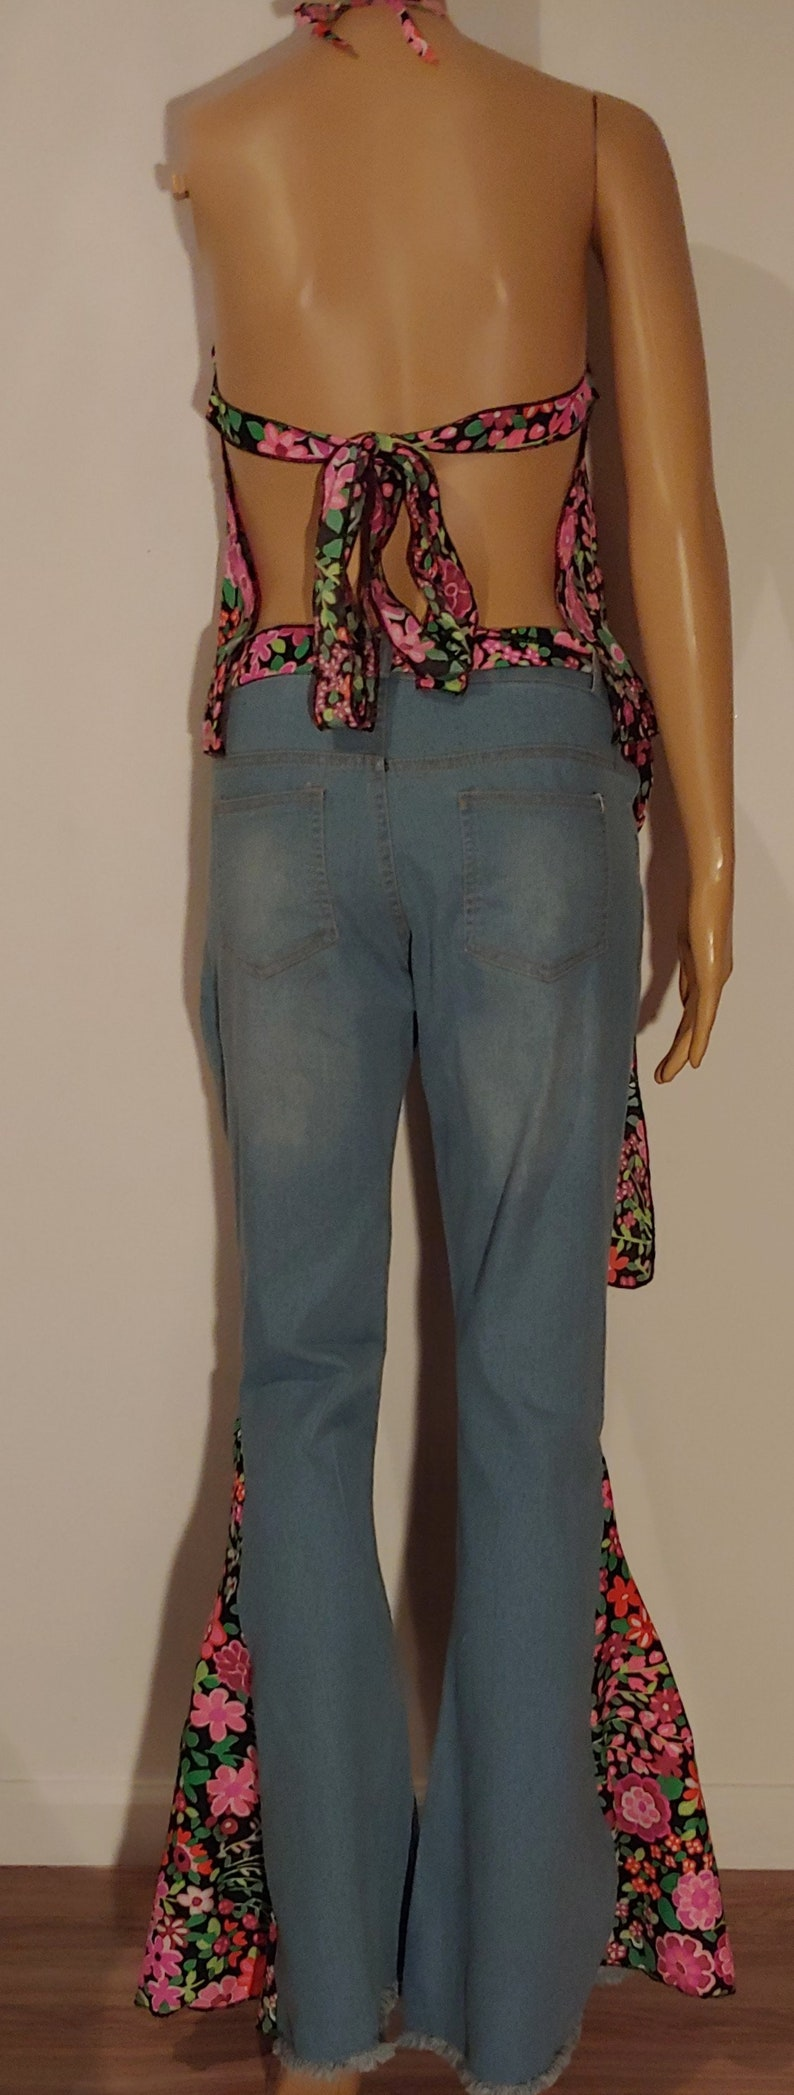 ladies size 5 1970/'s theme party event 30 waist hippie boho bell bottoms flared jeans and halter top costumes